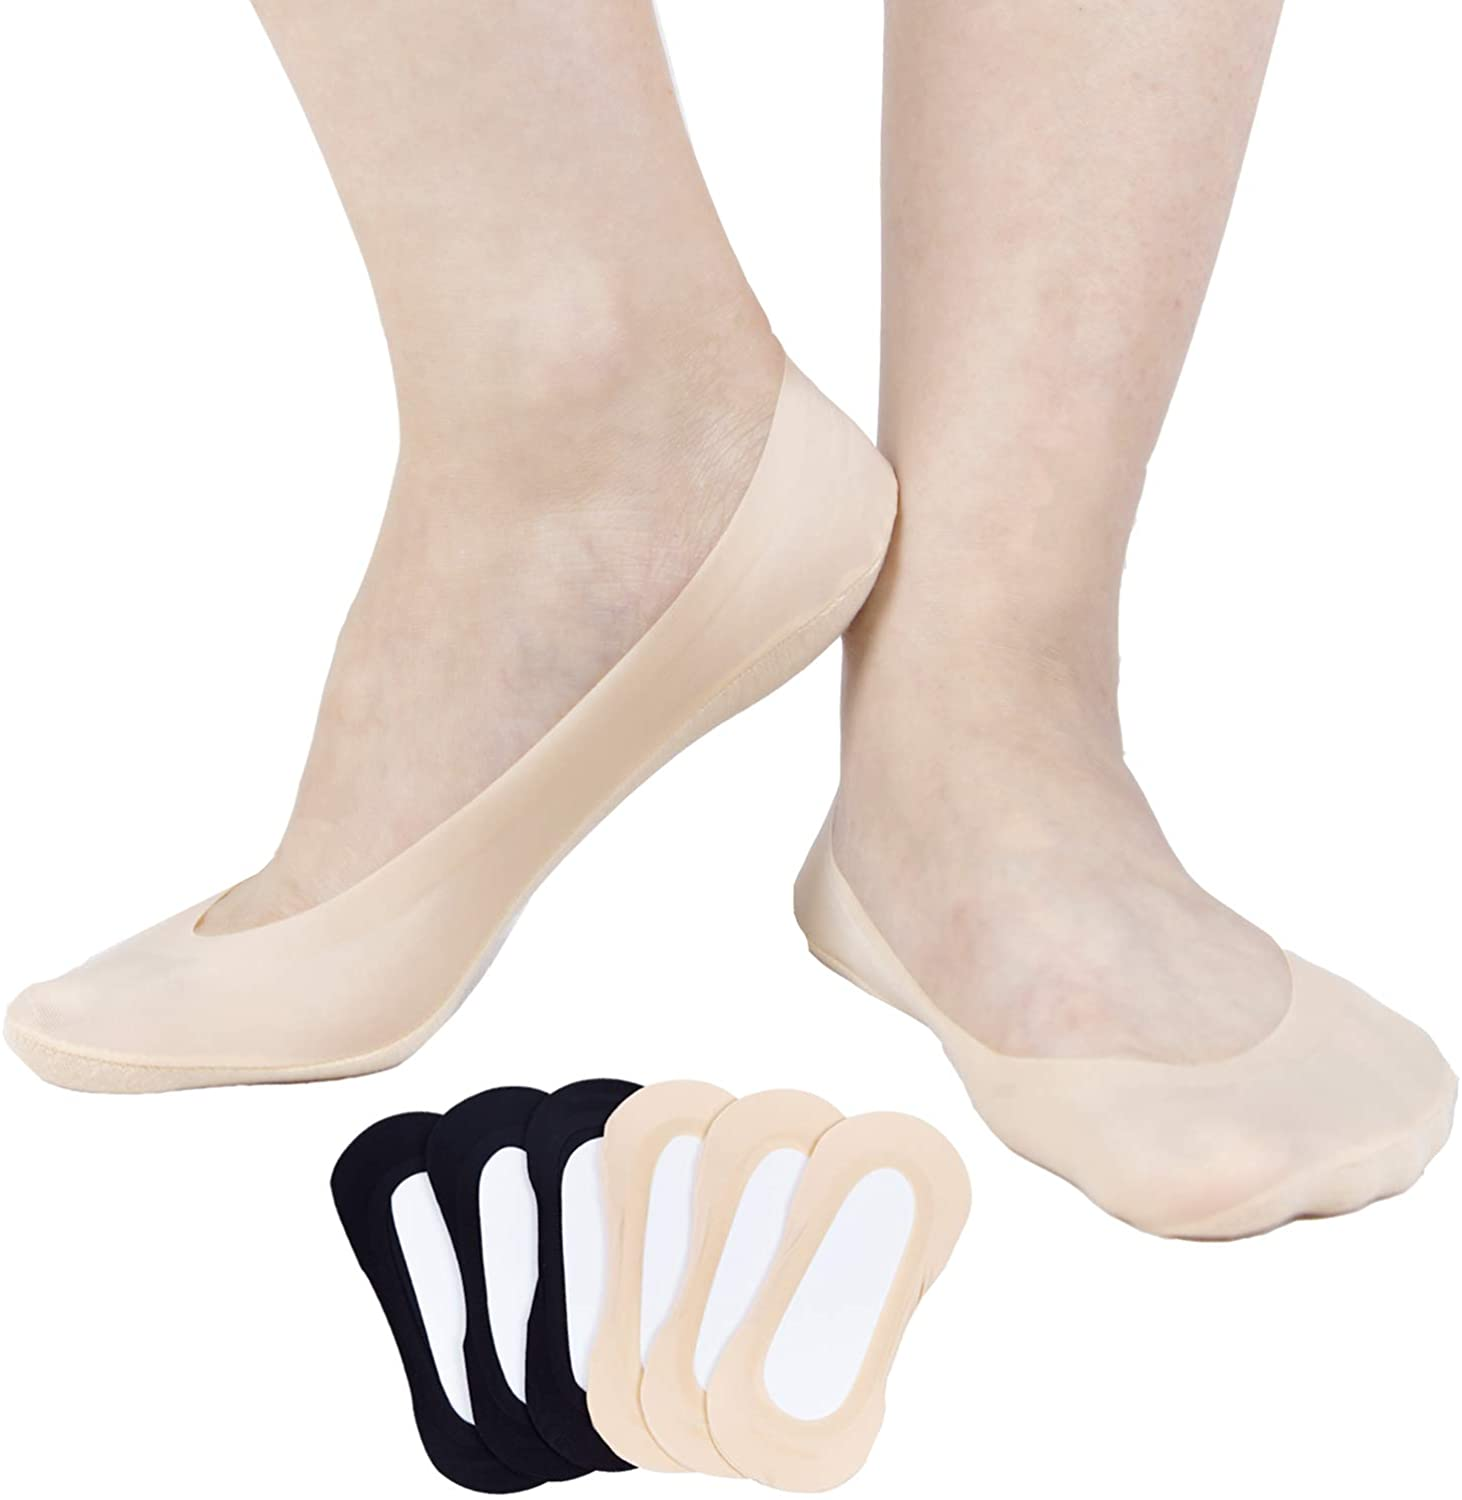 Women's 6Pack Ultra No Show Low Cut Non Slip Socks,Thin Ice Silk Invisible Liner Summer Socks for Flats Boat